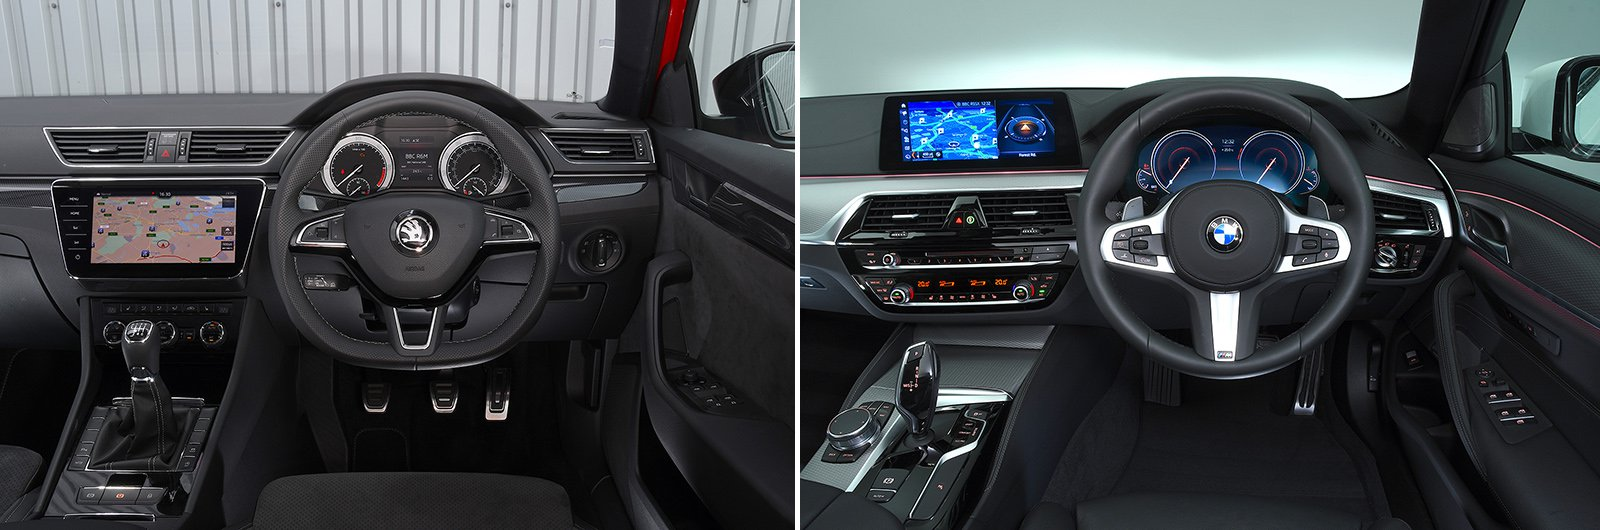 Superb 5 Series interior